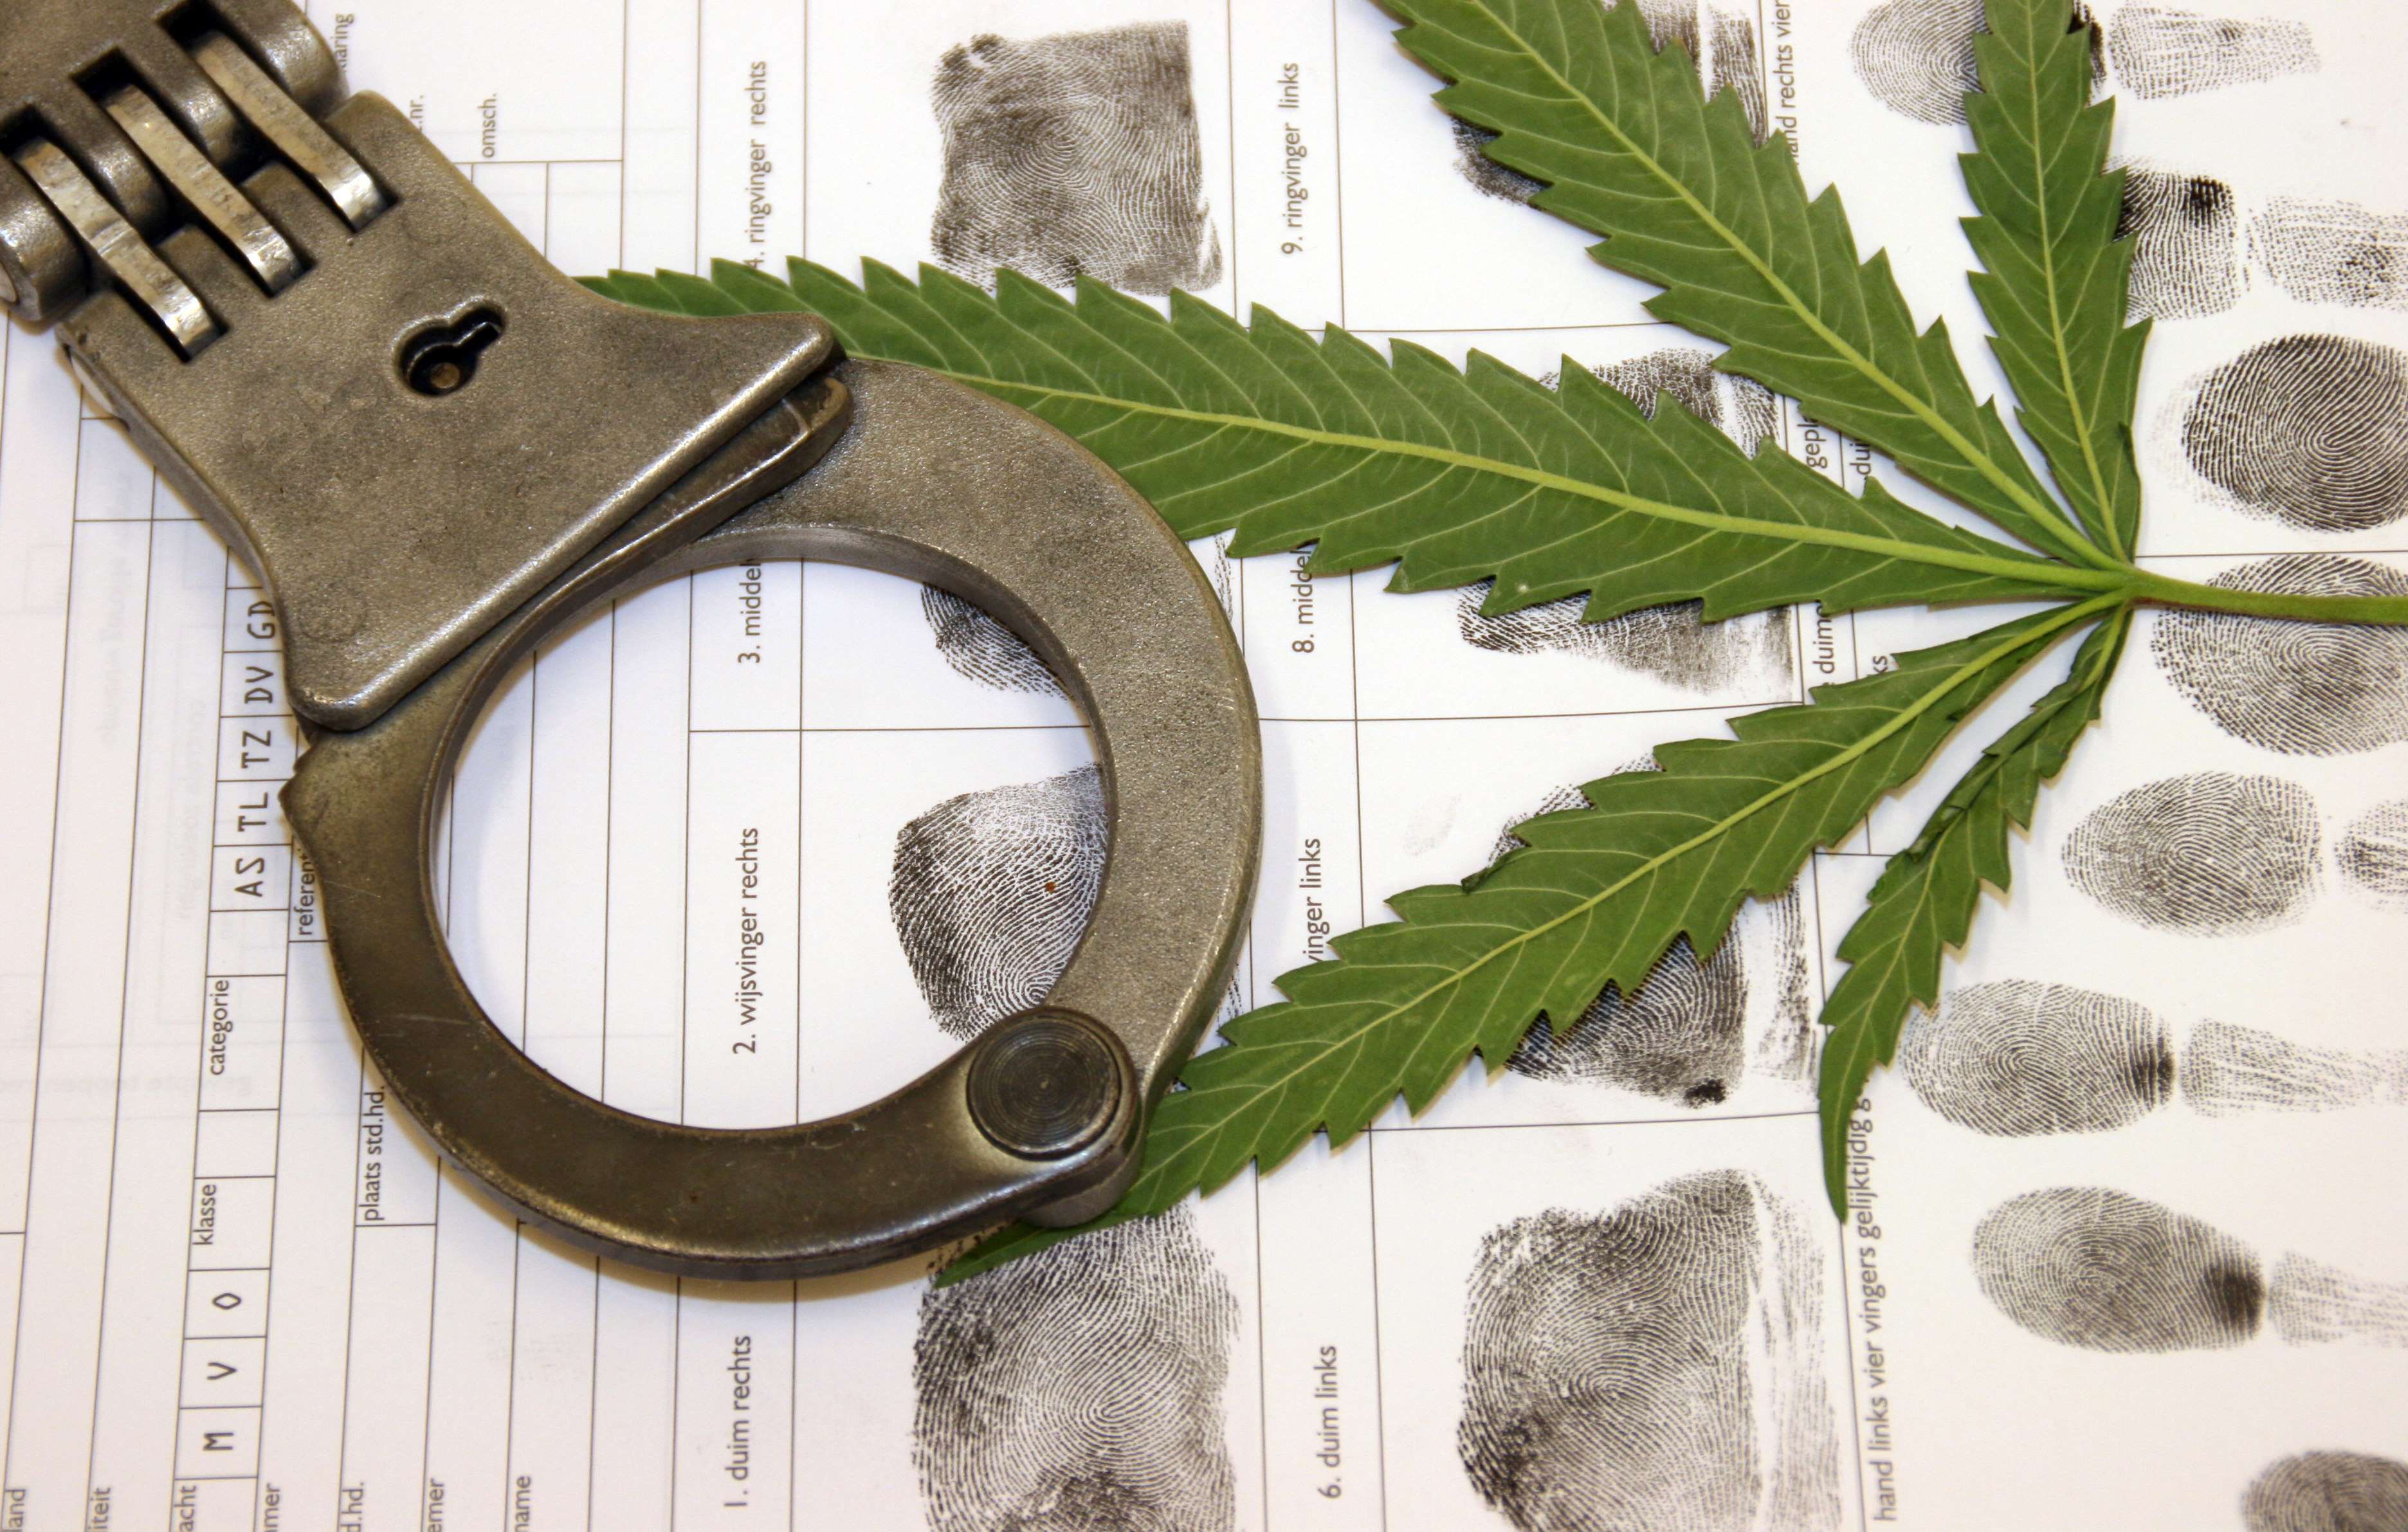 How to Get Cannabis Crimes Expunged From Your Record in California